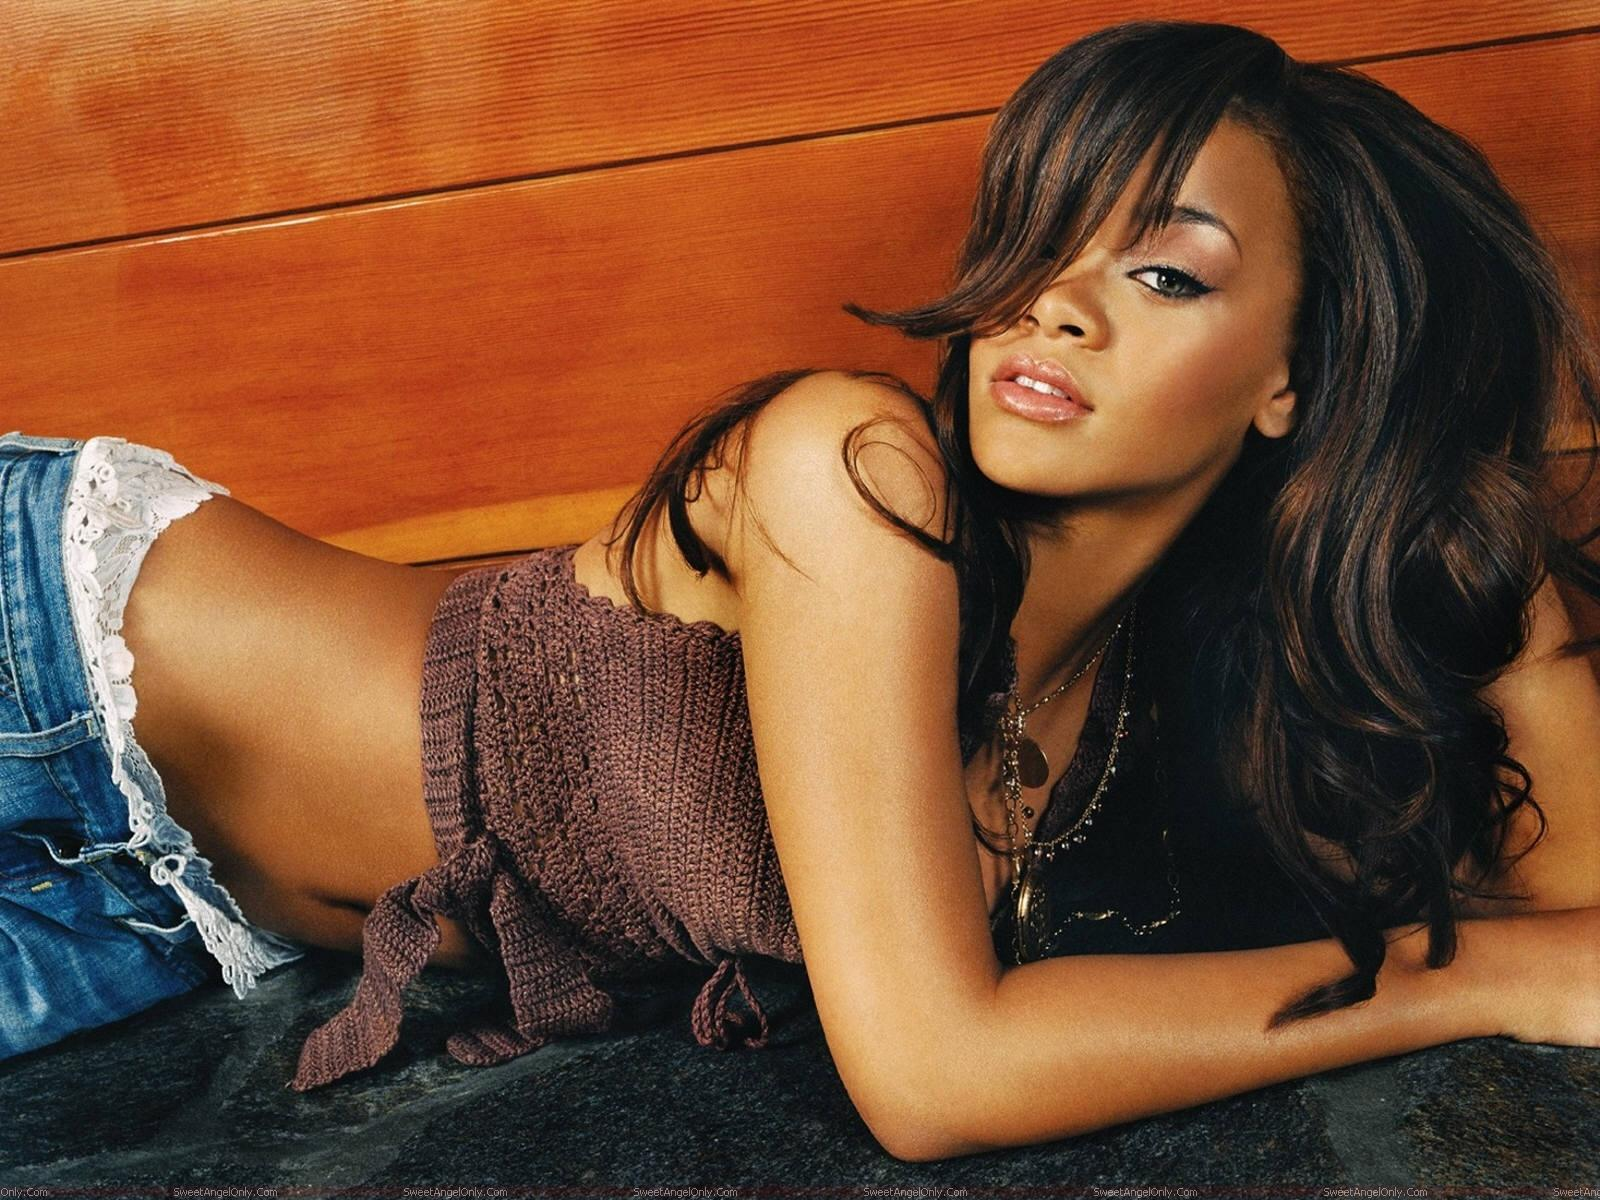 http://1.bp.blogspot.com/-KGj0nxL1yRk/TamSBYIoEpI/AAAAAAAAGo0/R3K0MP3Qgew/s1600/rihanna_hot_wallpaper_on_ground.jpg